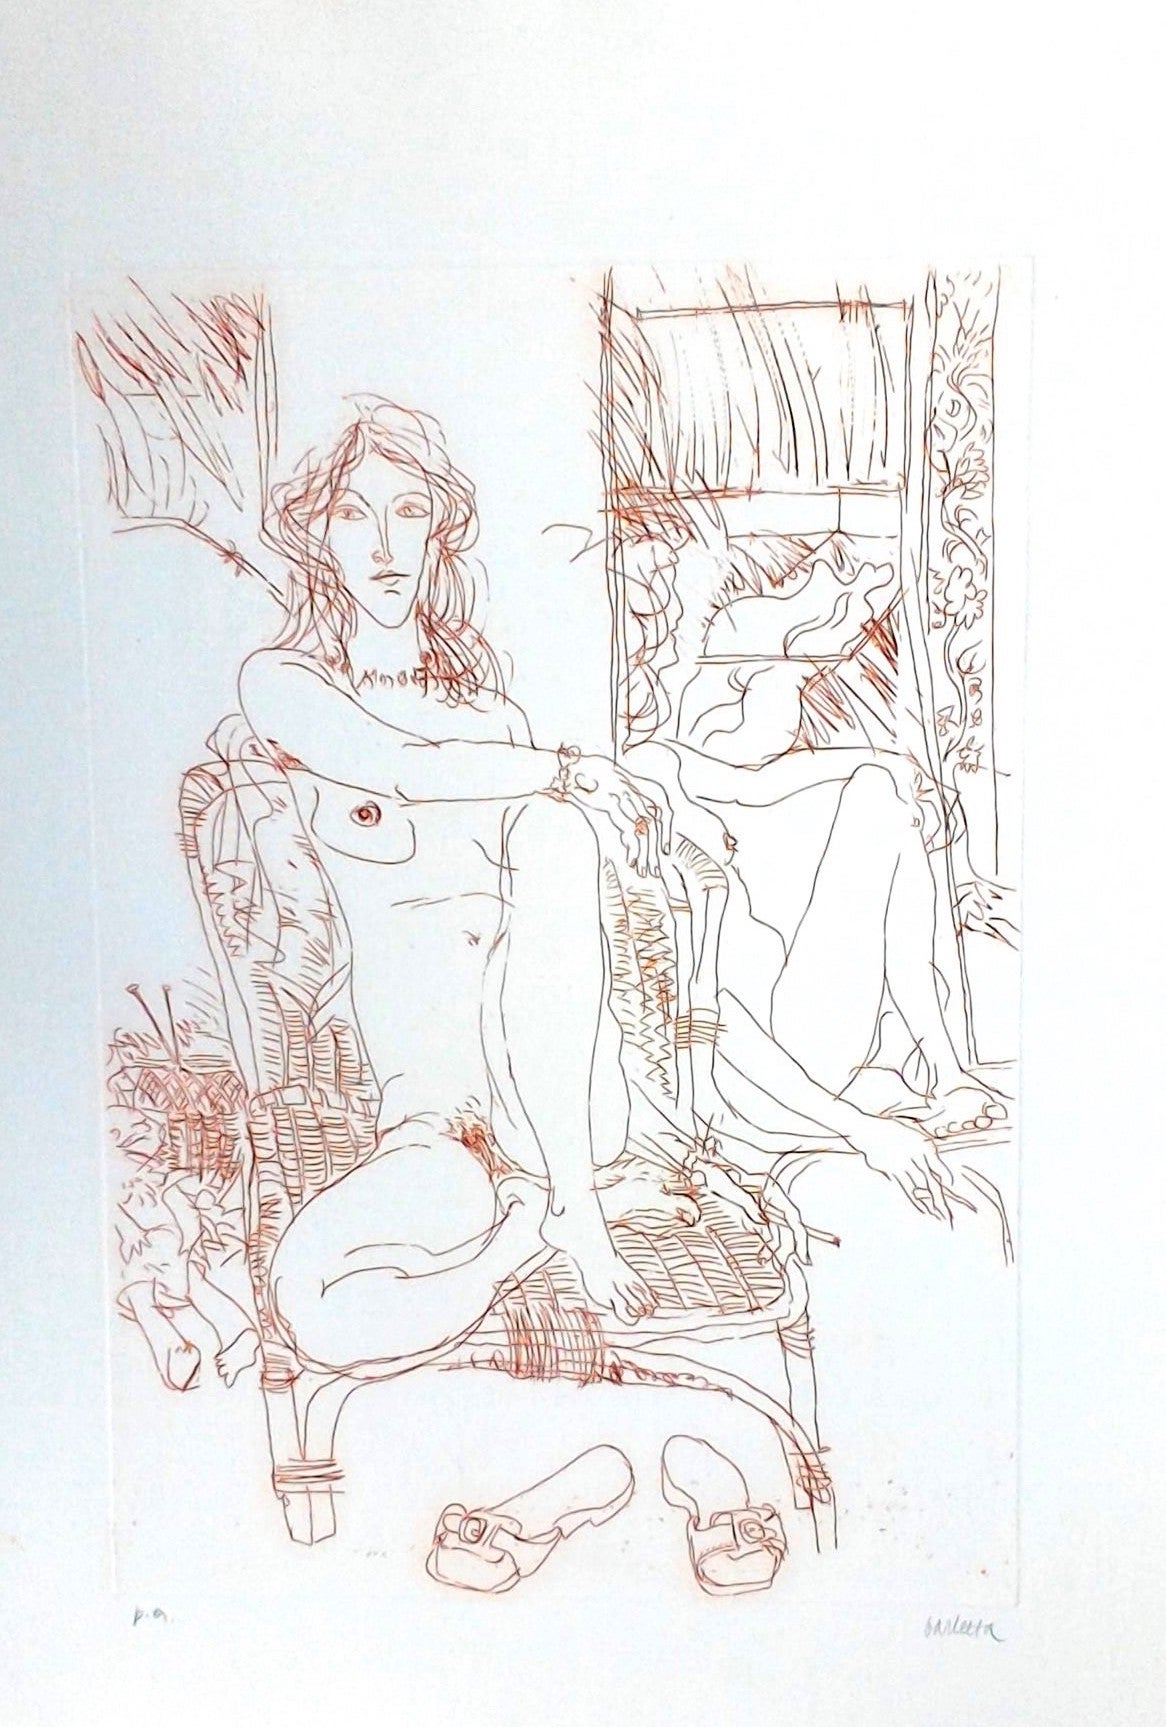 Nude Model - Original Etching by Sergio Barletta - 1970s